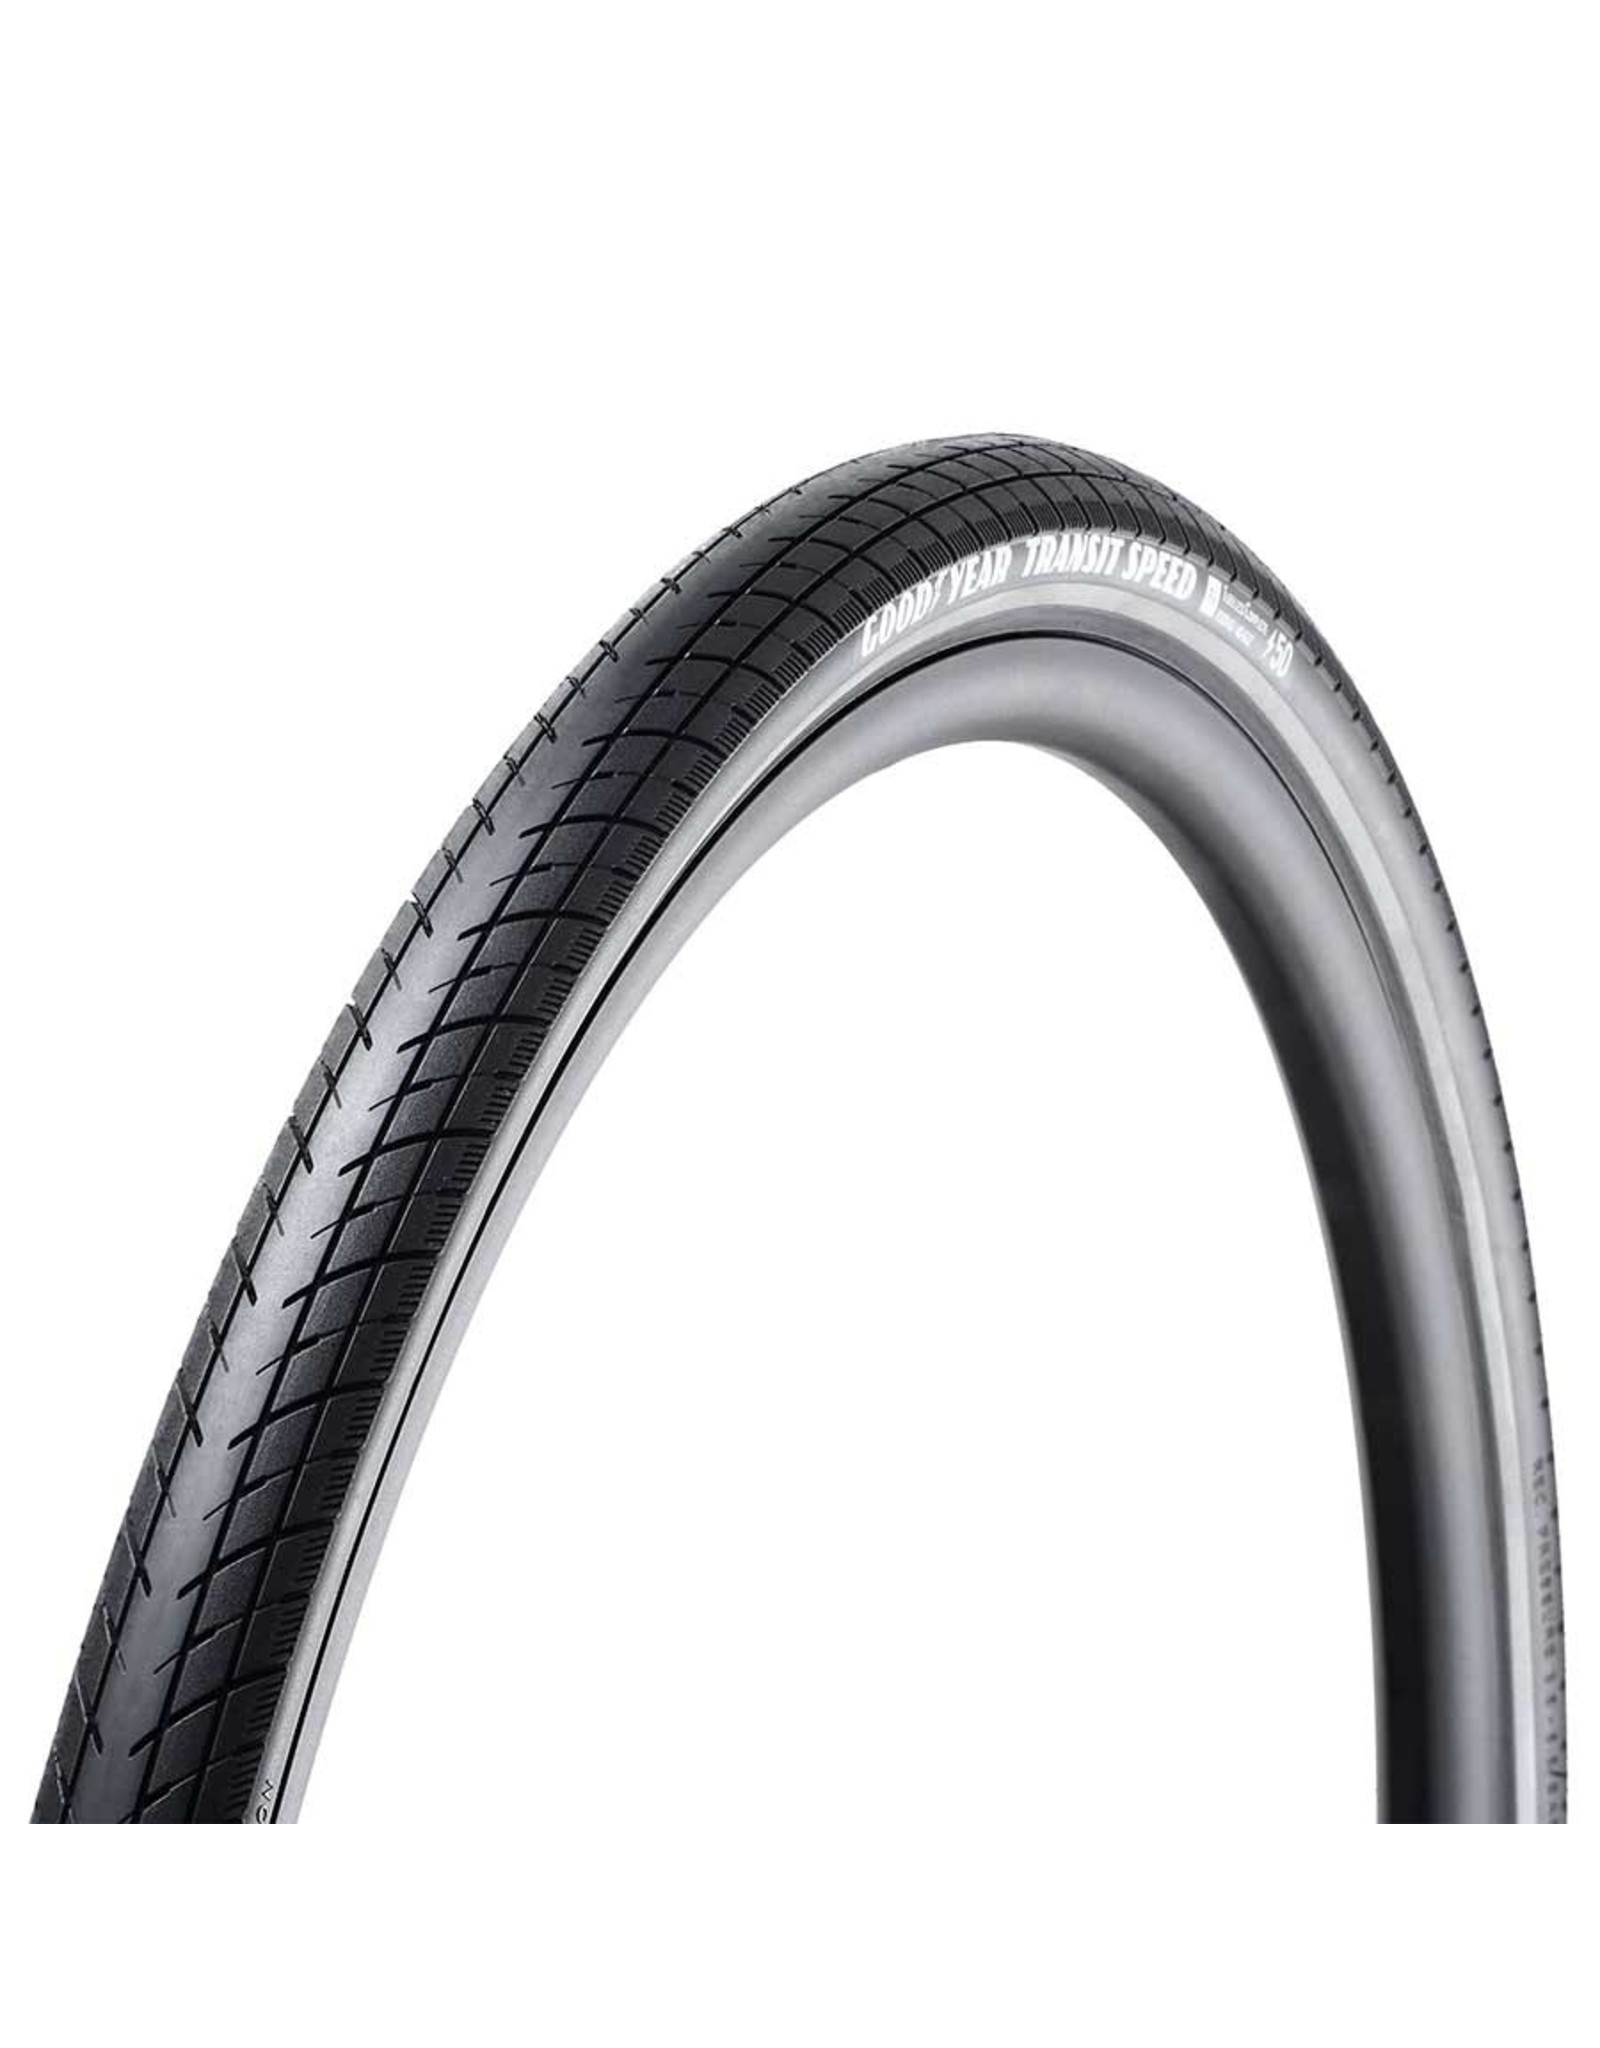 Goodyear Goodyear, Transit Speed, Tire, 700x35C, Wire, Clincher, Dynamic:Silica4, S5: Secure Shell, 60TPI, Black